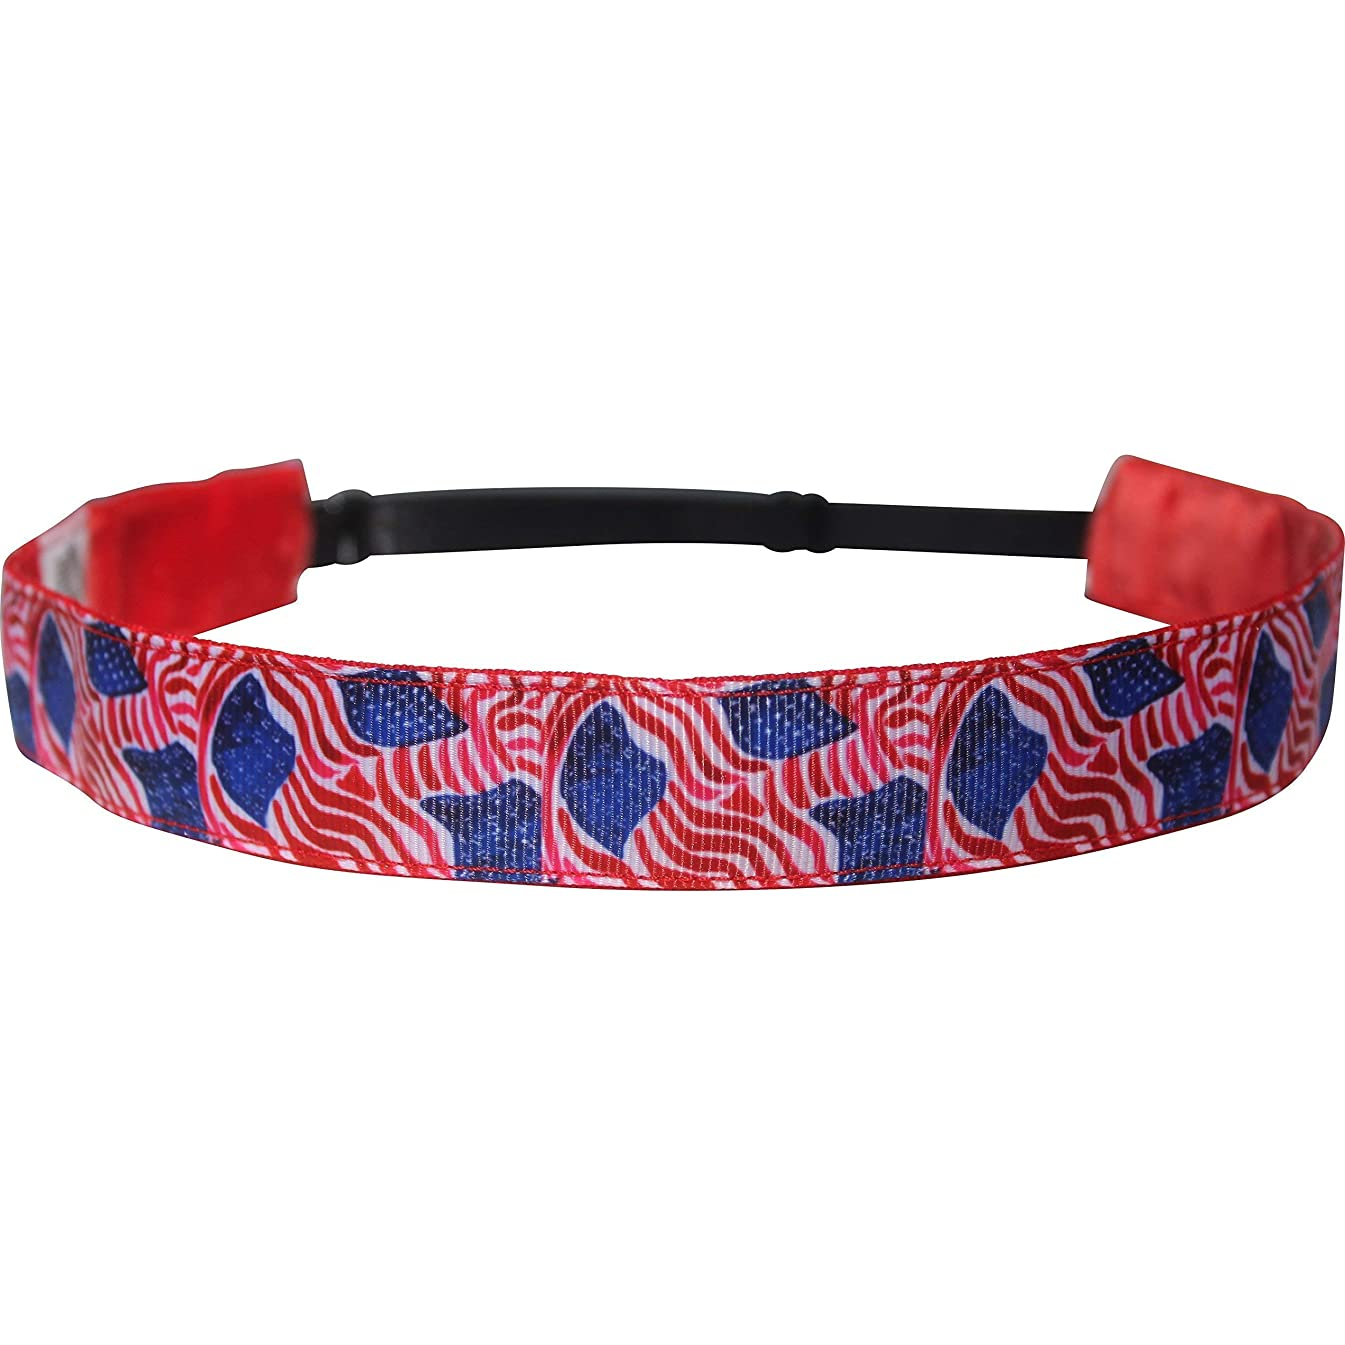 Red White & Blue July 4th Headband Non Slip Adjustable Workout Hairband